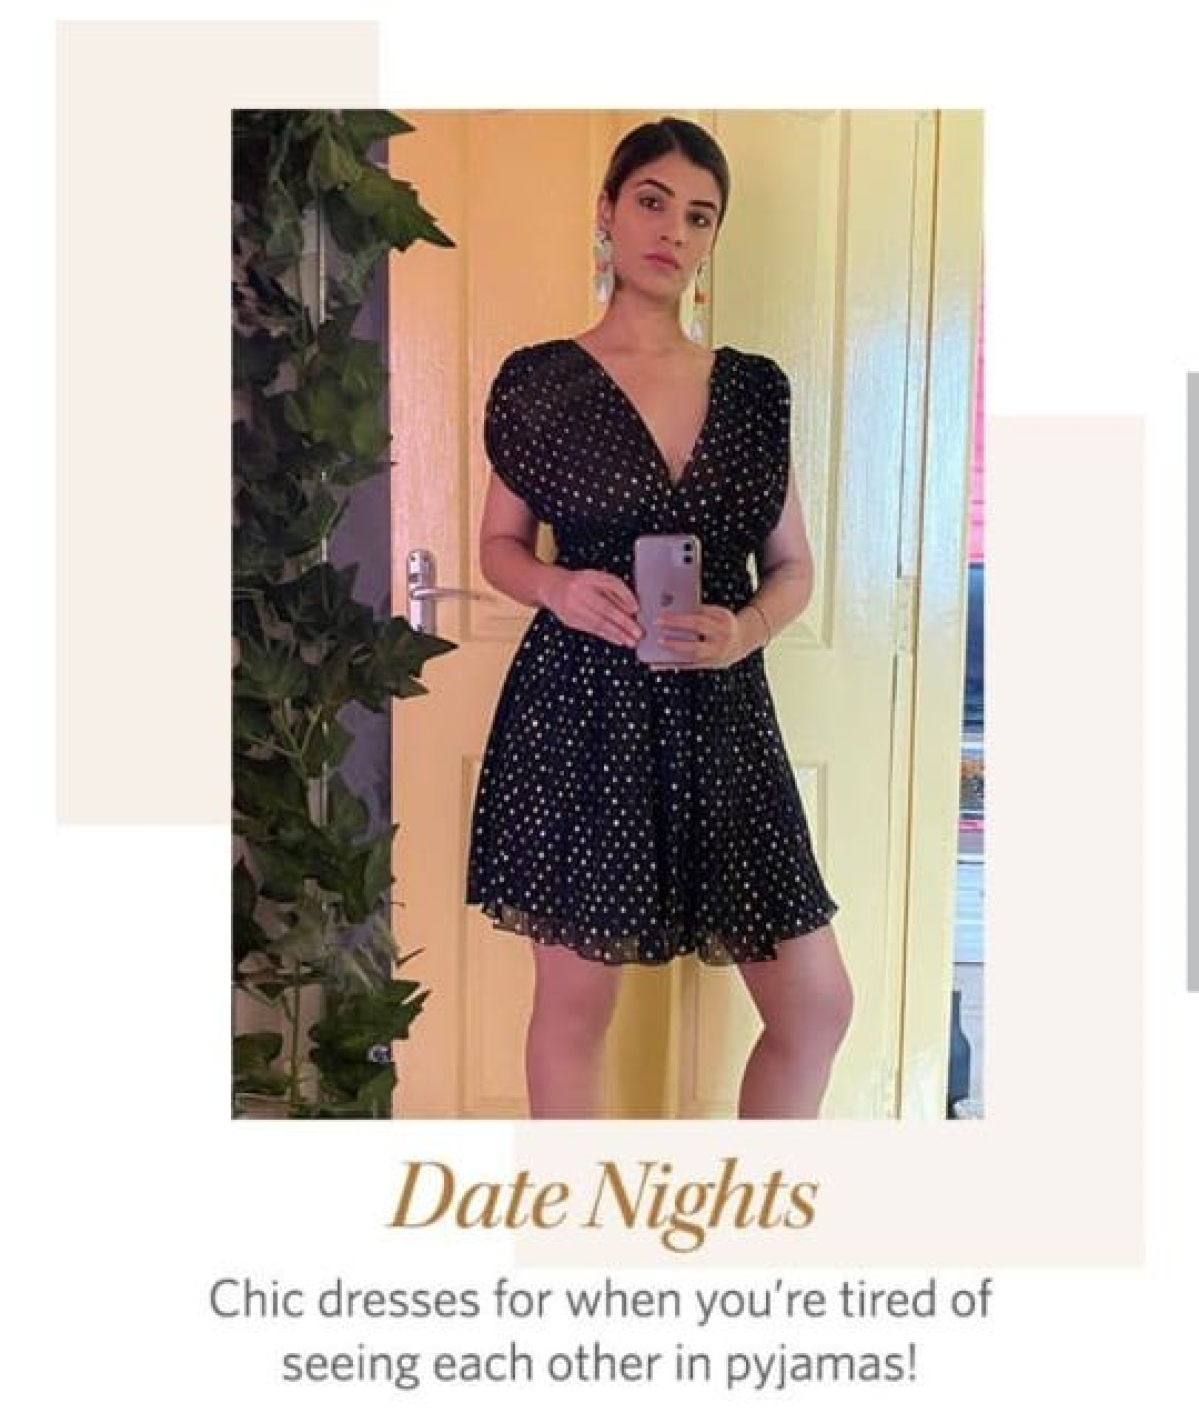 Myntra's mailers turn the focus on WFH fashion